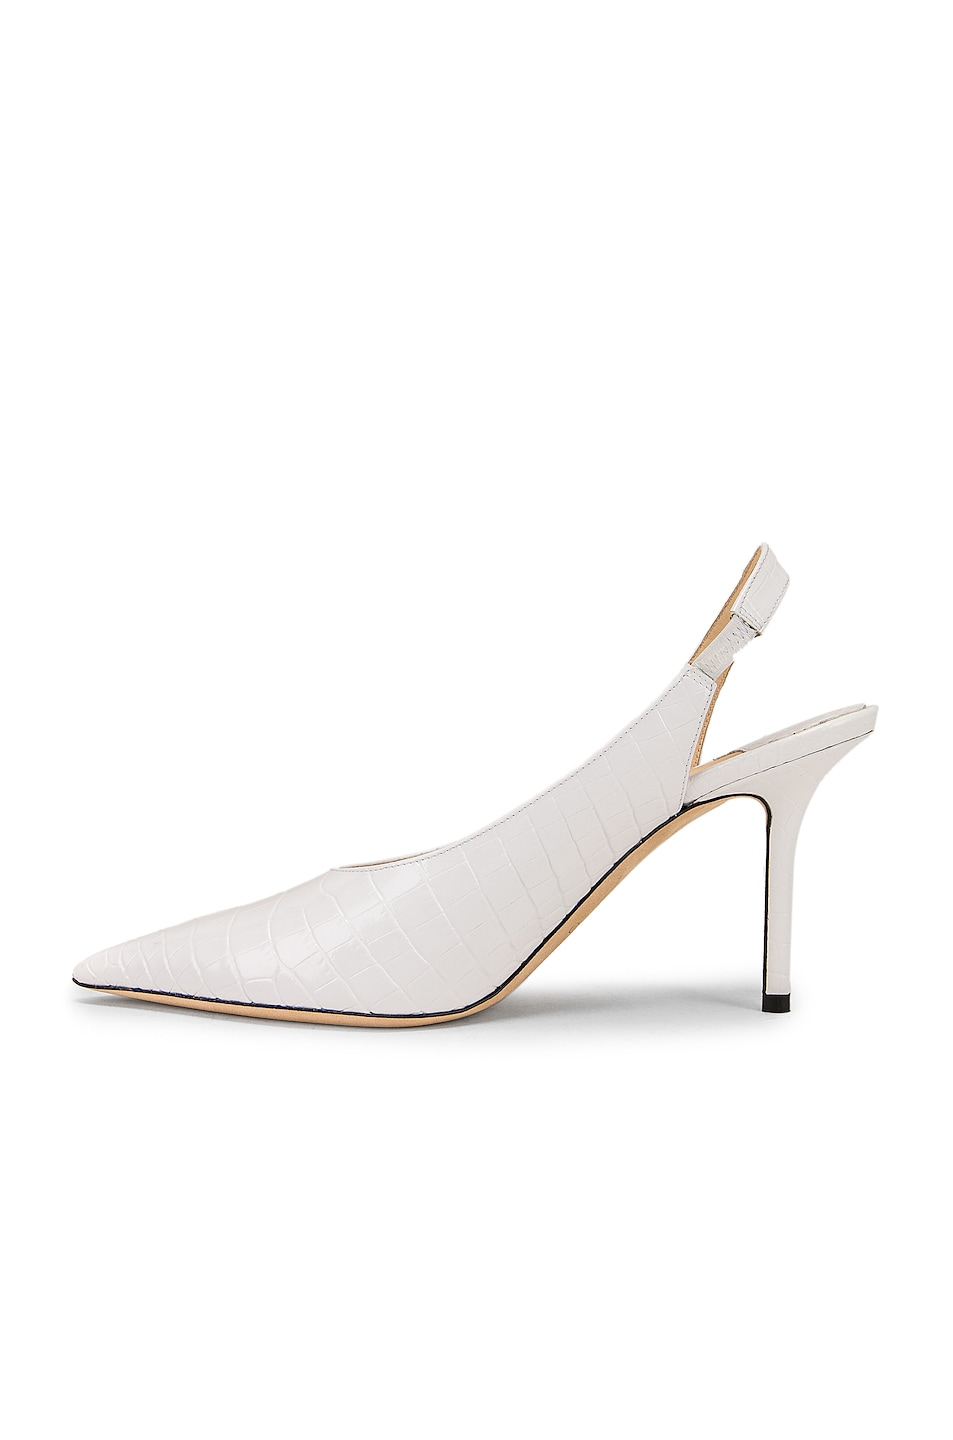 Image 5 of Jimmy Choo Ivy 85 Heel in Latte